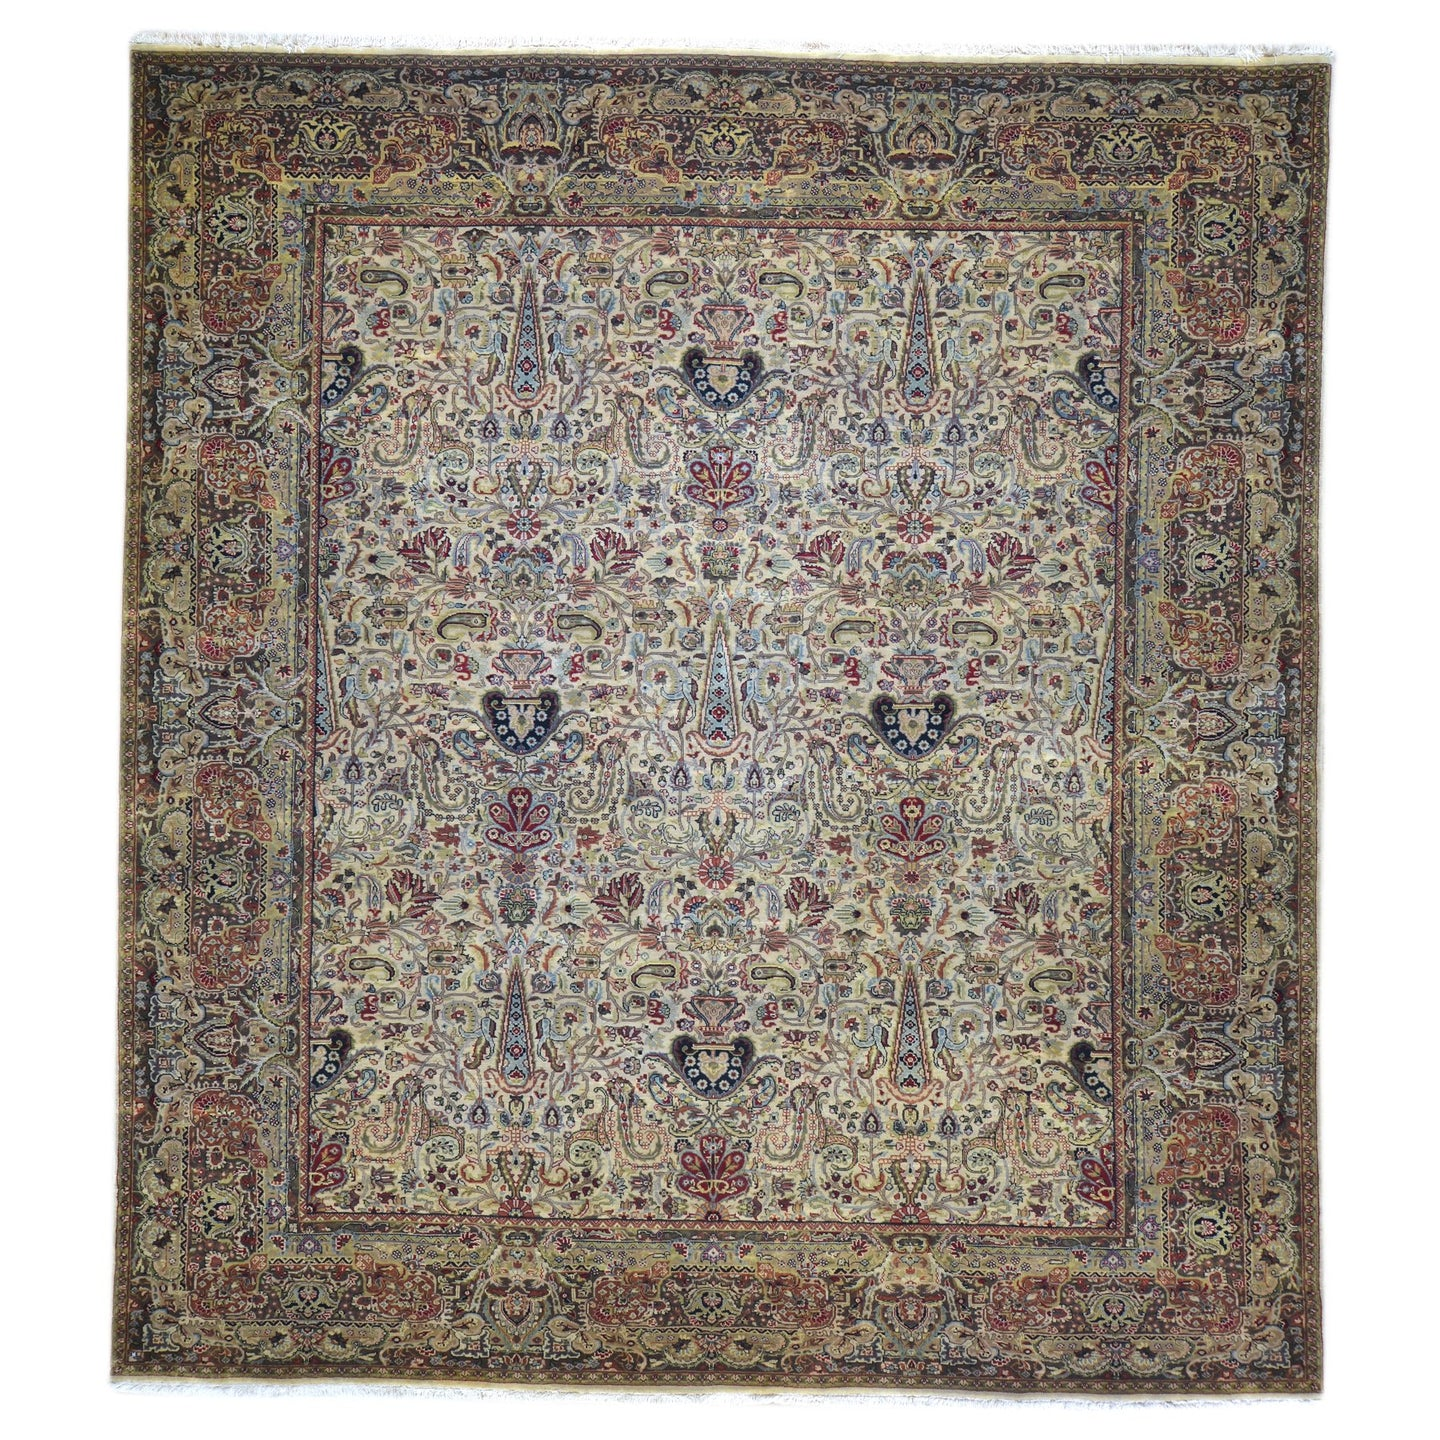 Oriental rugs, hand-knotted carpets, sustainable rugs, classic world oriental rugs, handmade, United States, interior design,  Brral-3660